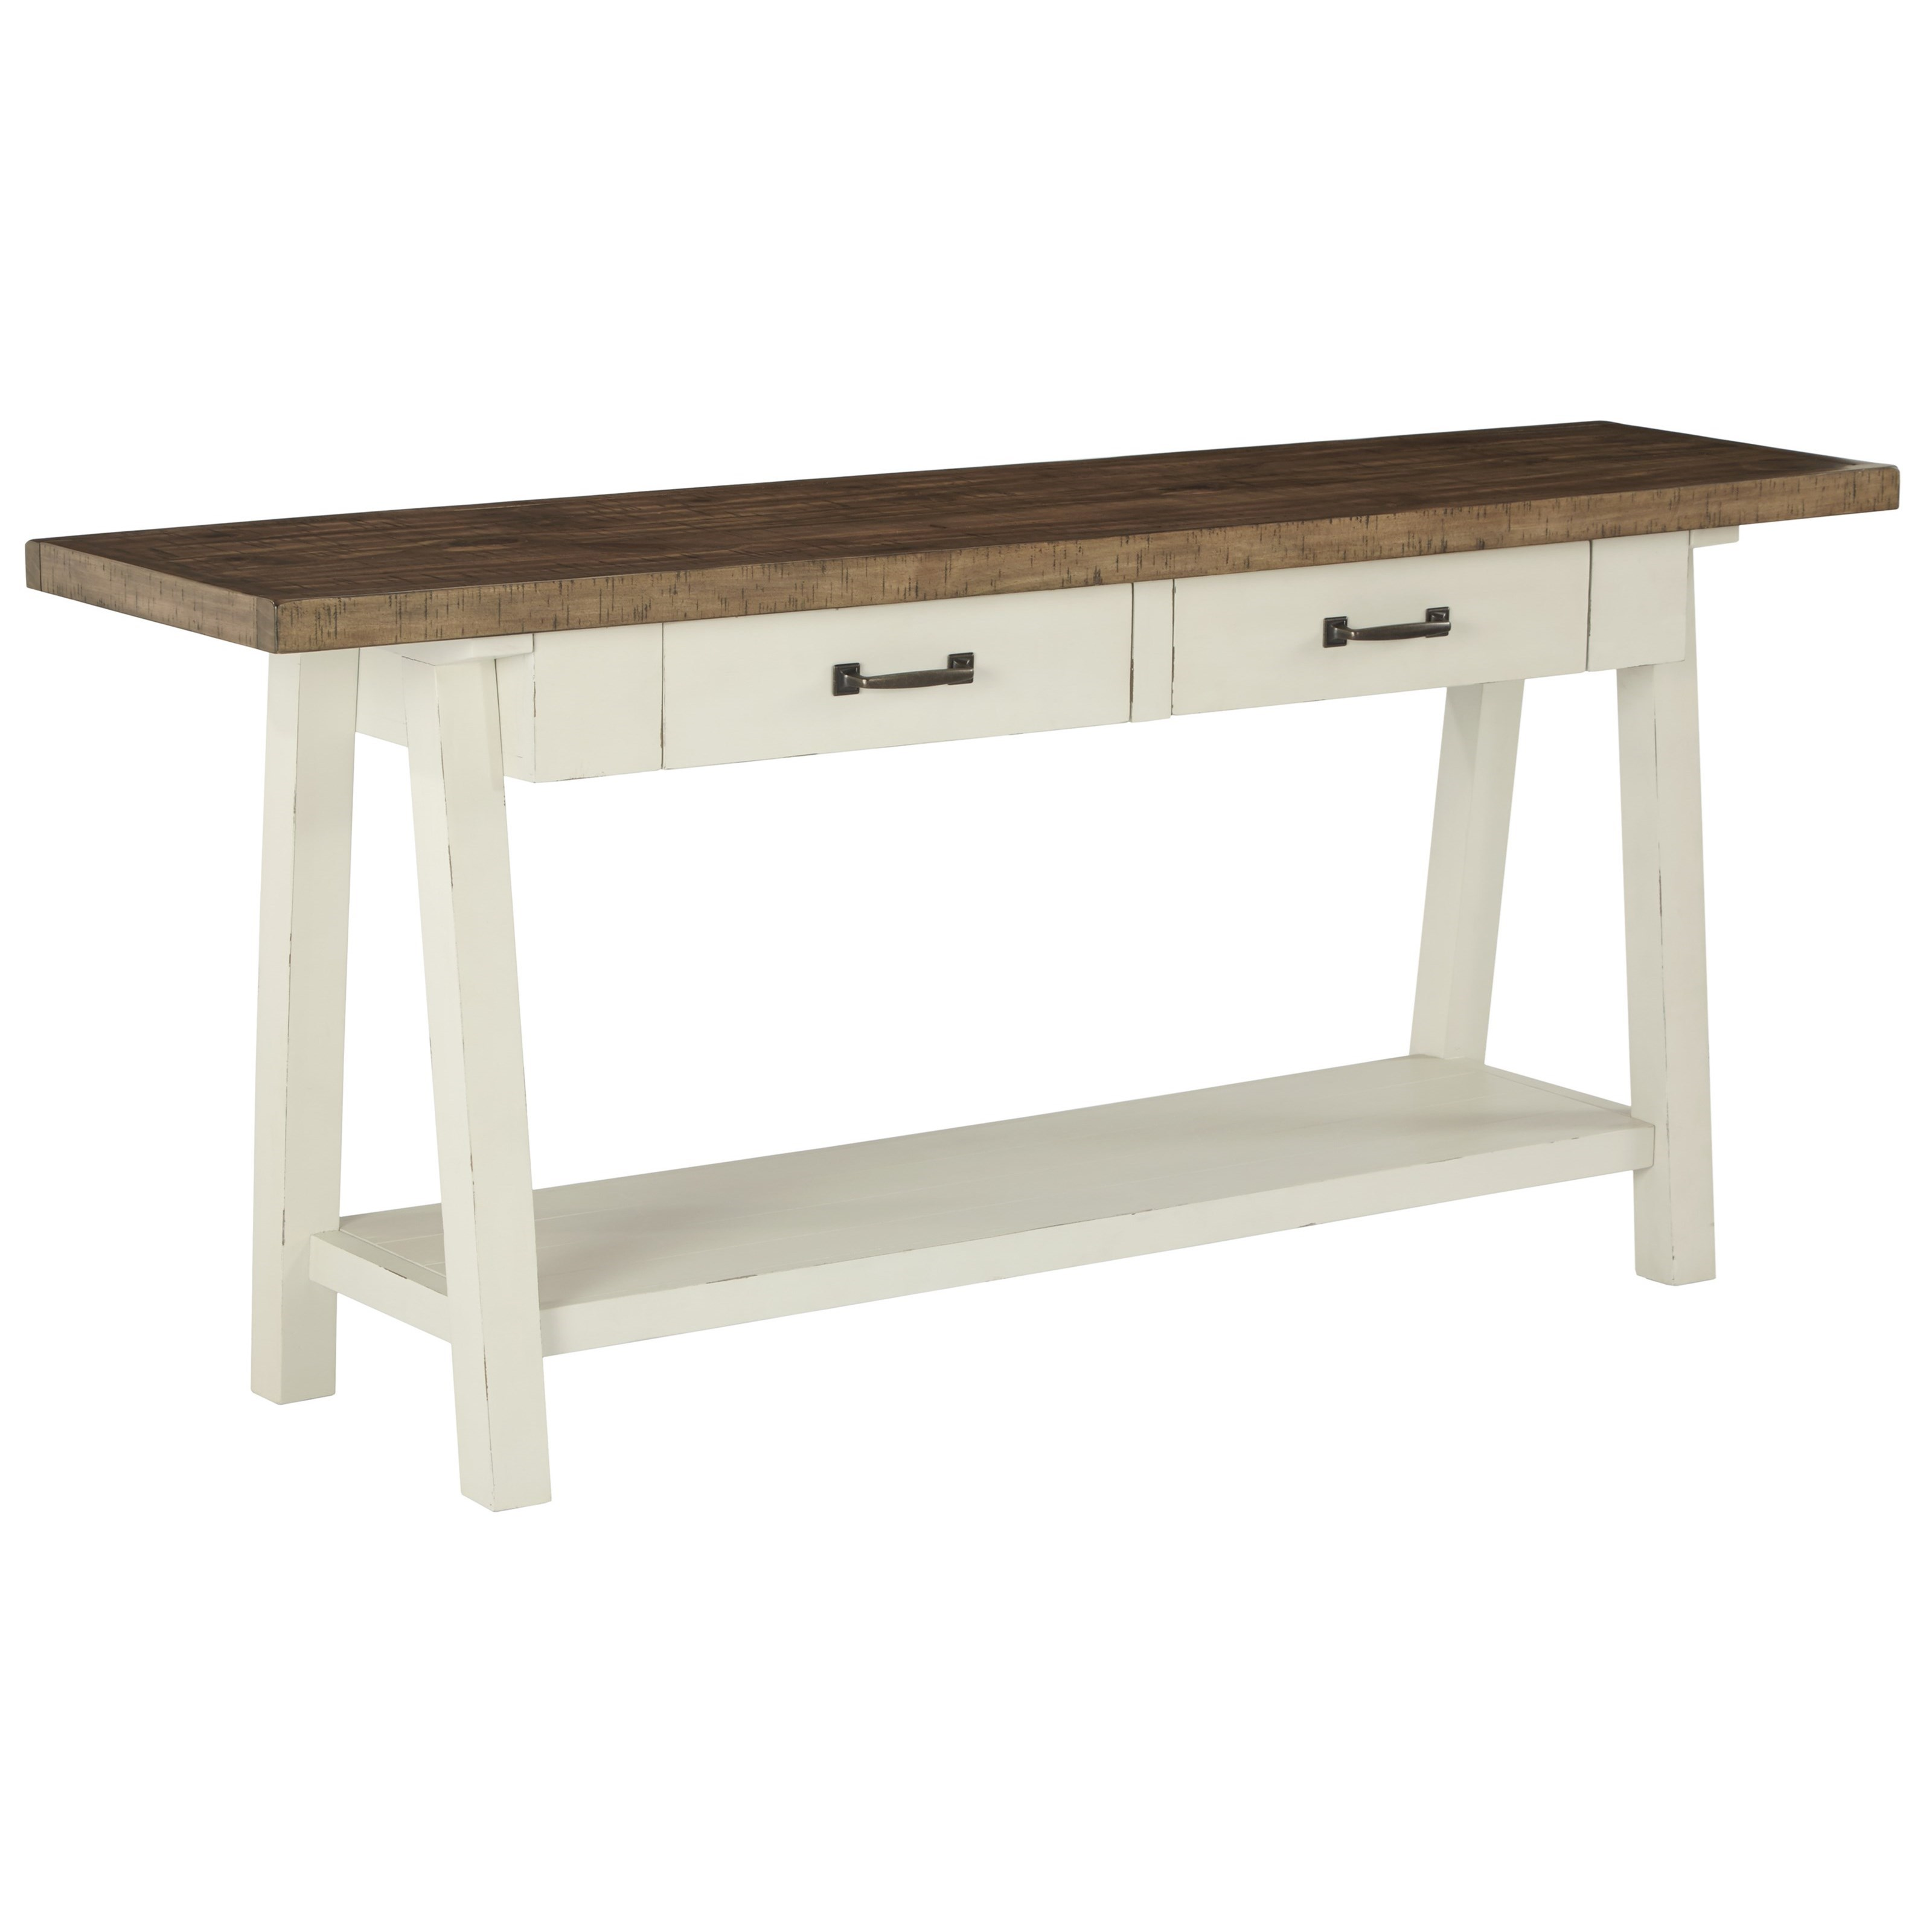 Signature Design by Ashley Stownbranner Sofa Table - Item Number: T640-4